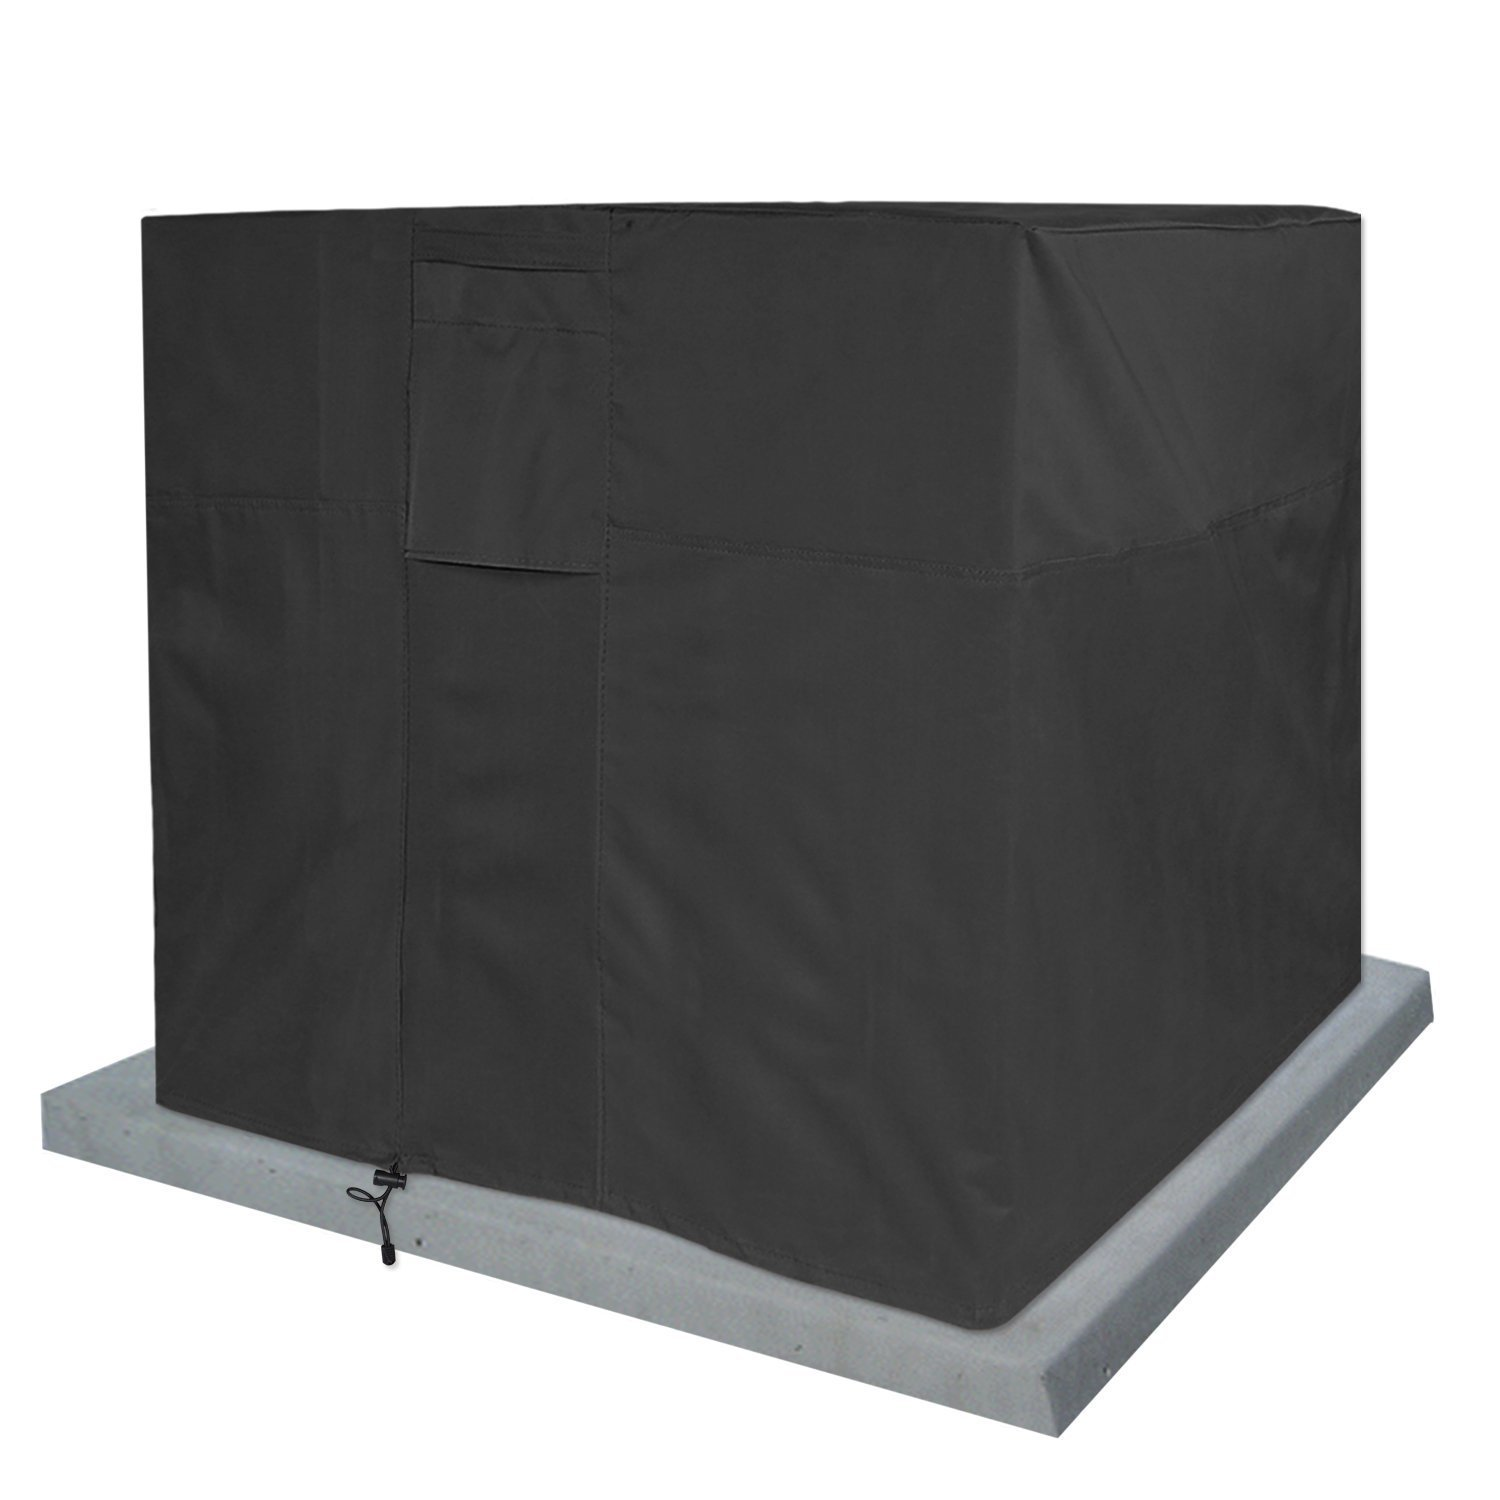 KHOMO Gear - Titan Series - Waterproof Heavy Duty Outdoor Air Conditioning Cover AC Protector - Black AC-Cover-Black